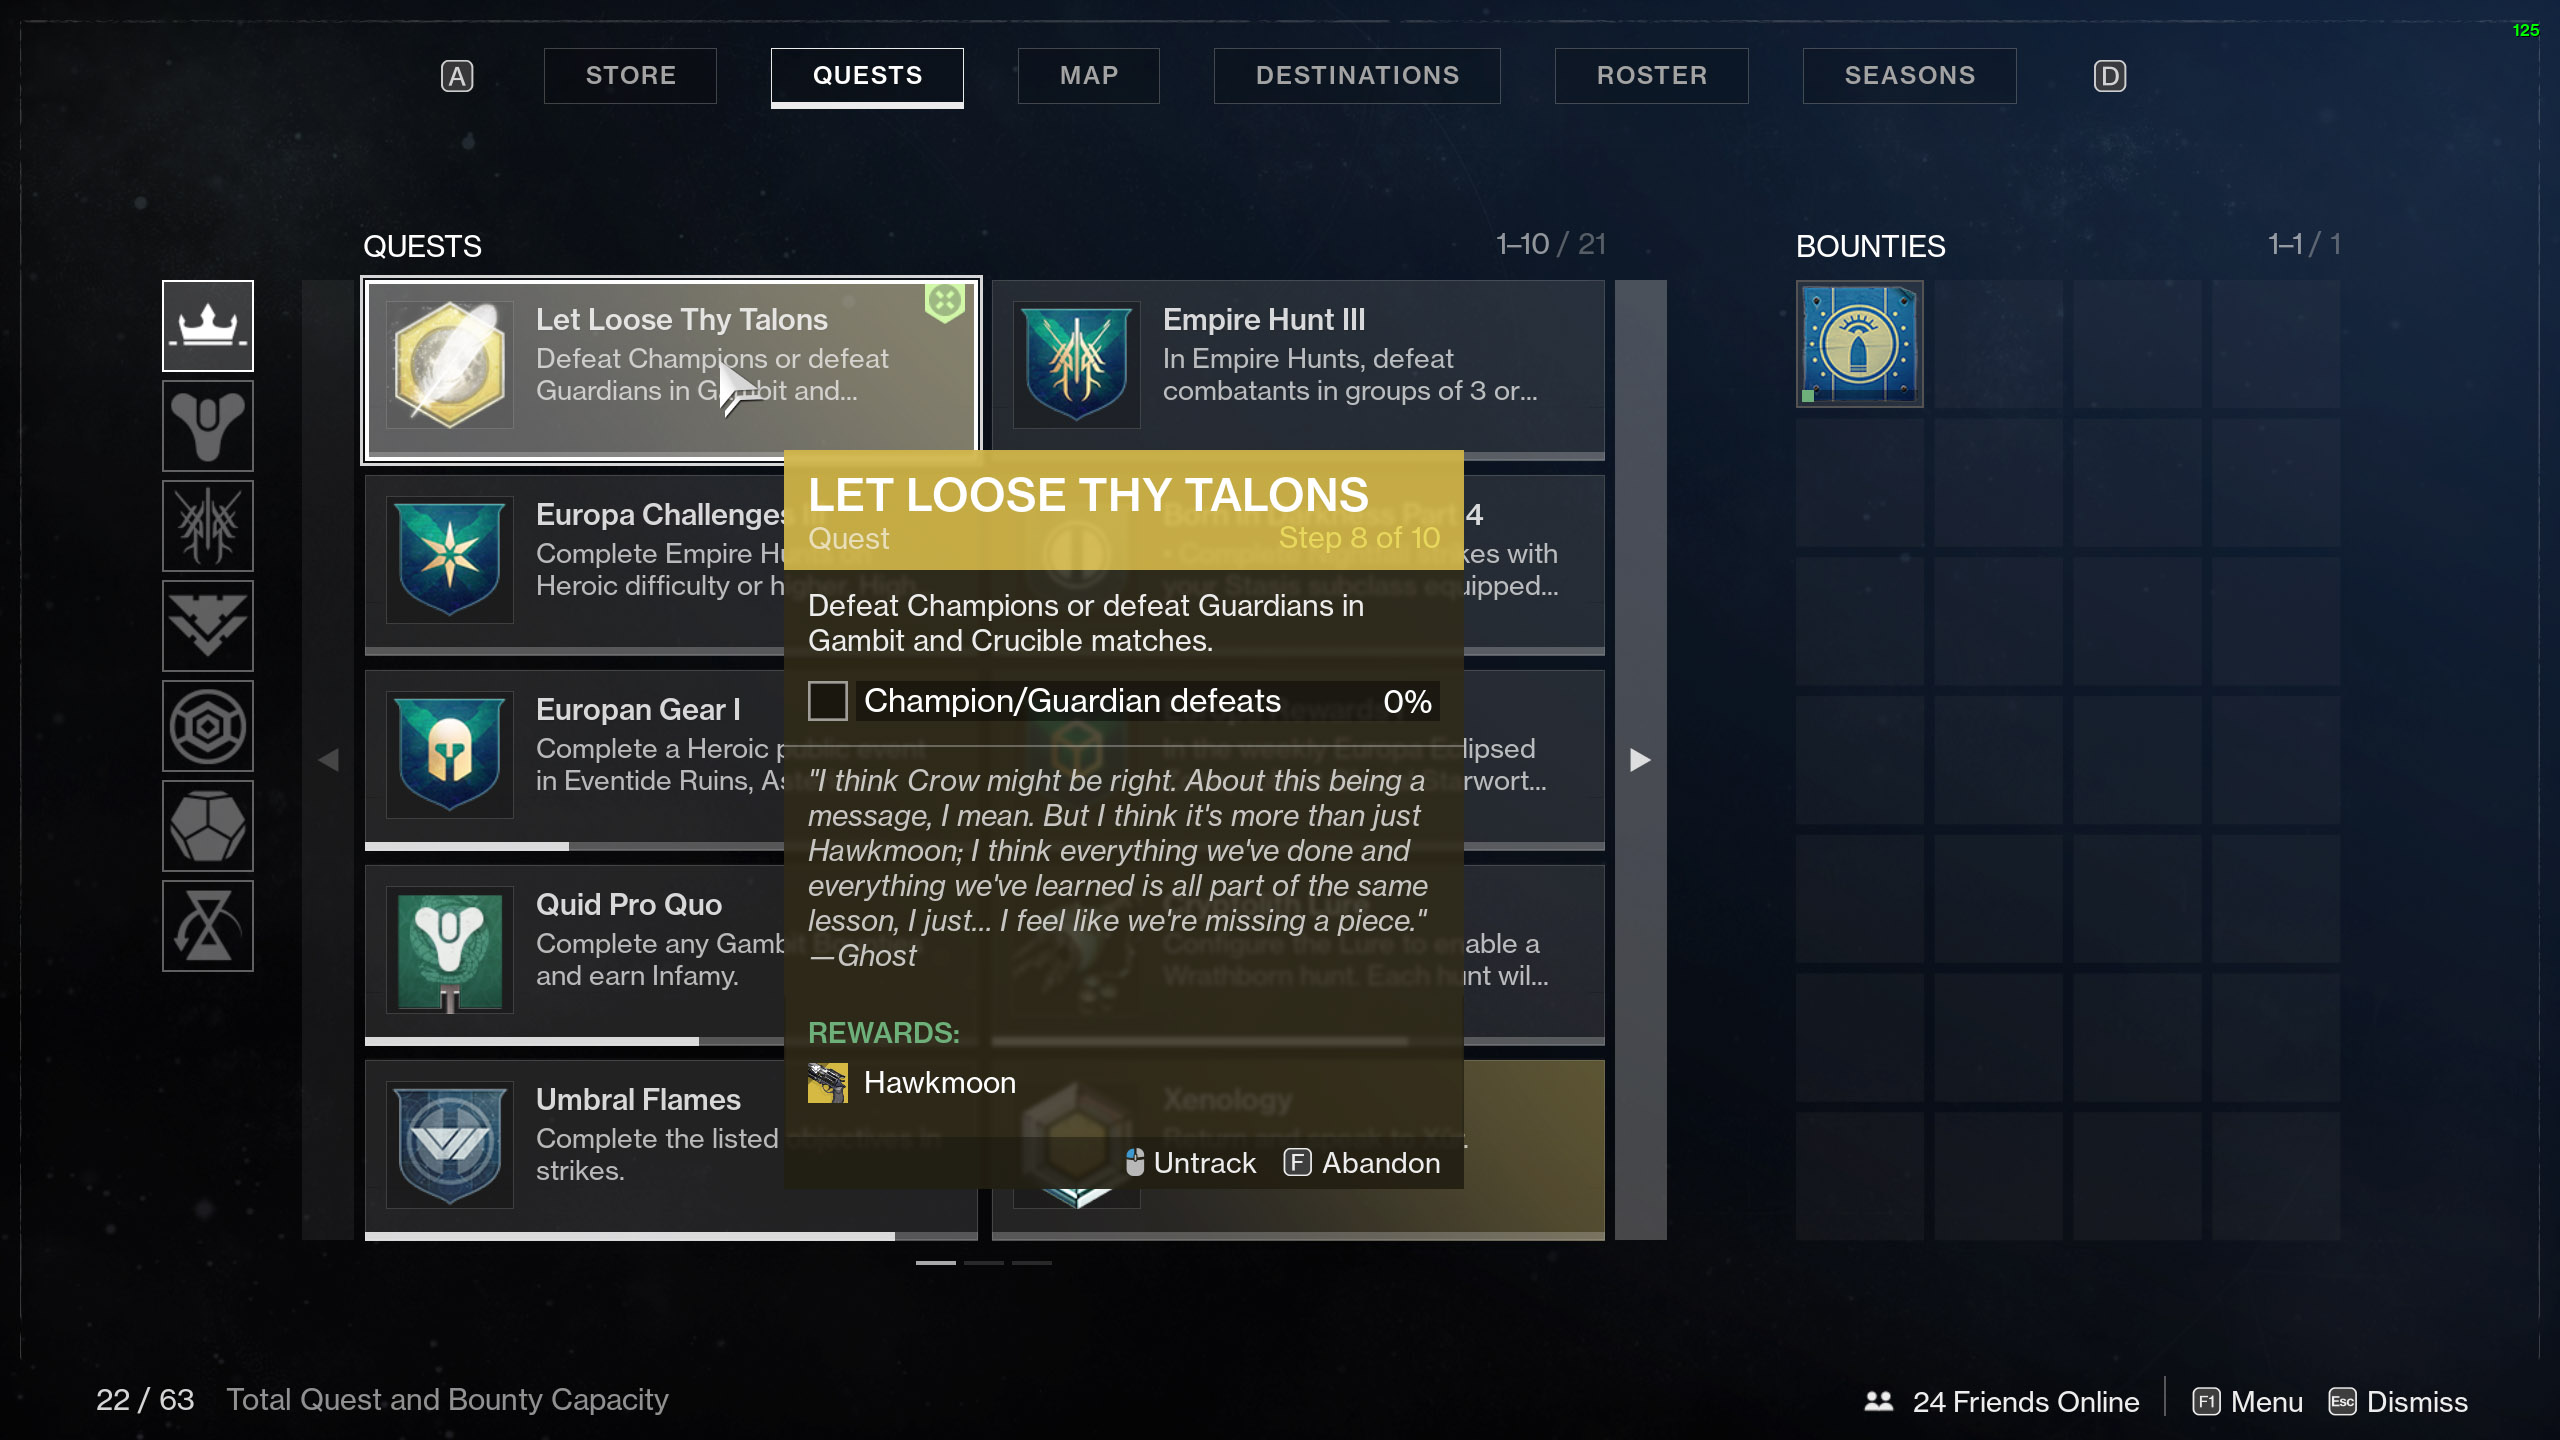 destiny 2 let loose thy talons defeat champions or guardians